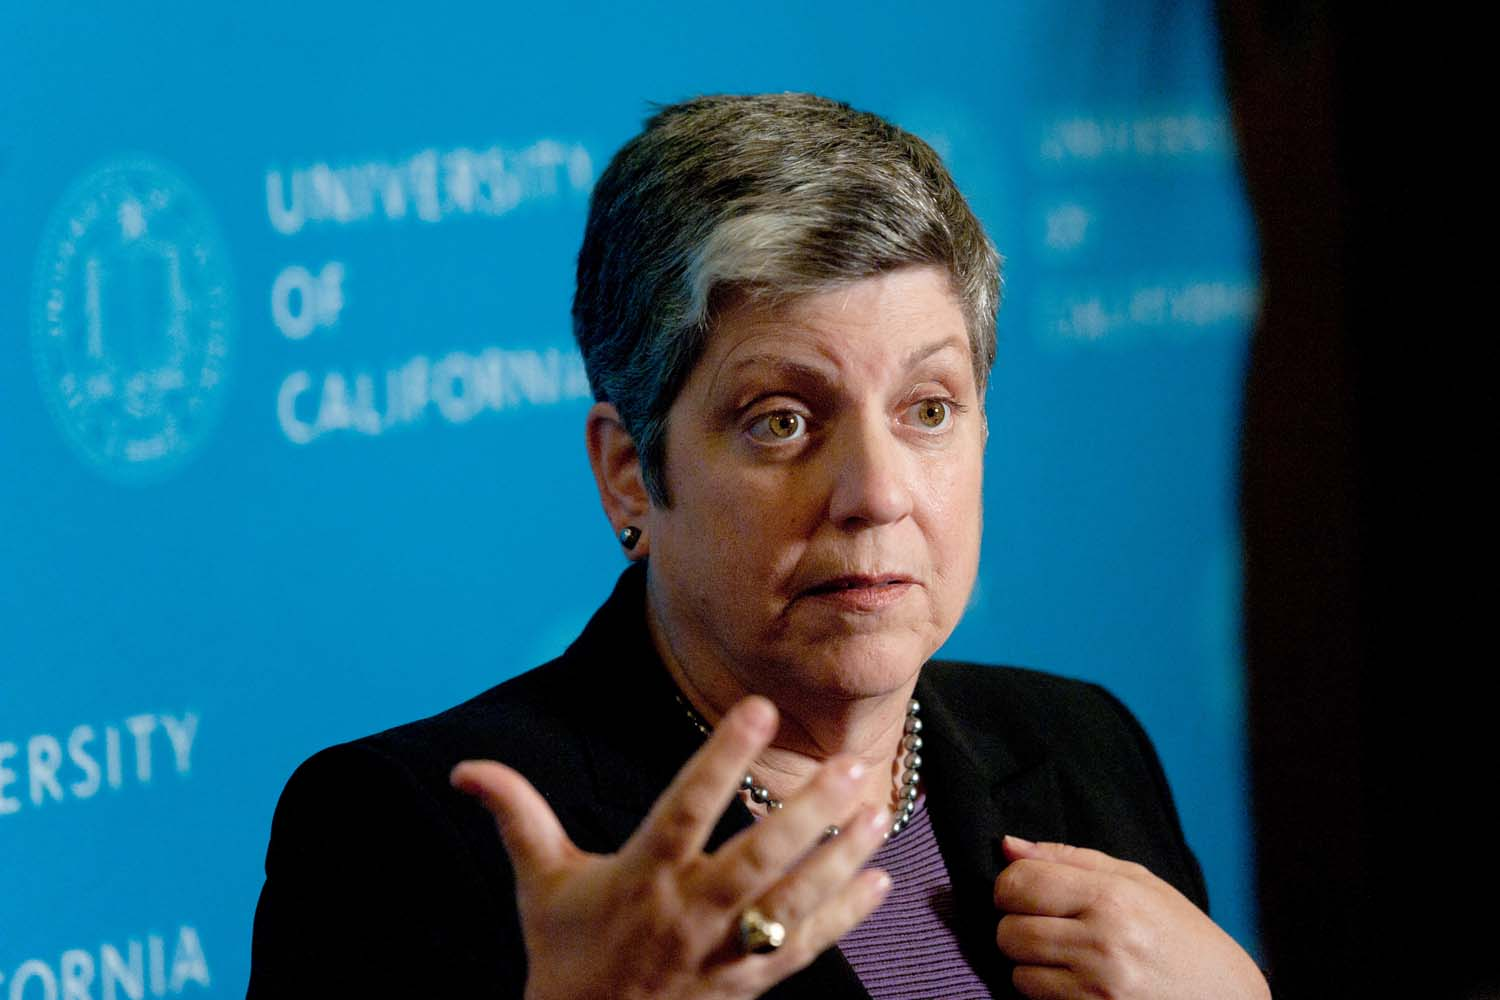 Law students denounce Napolitano commencement speech